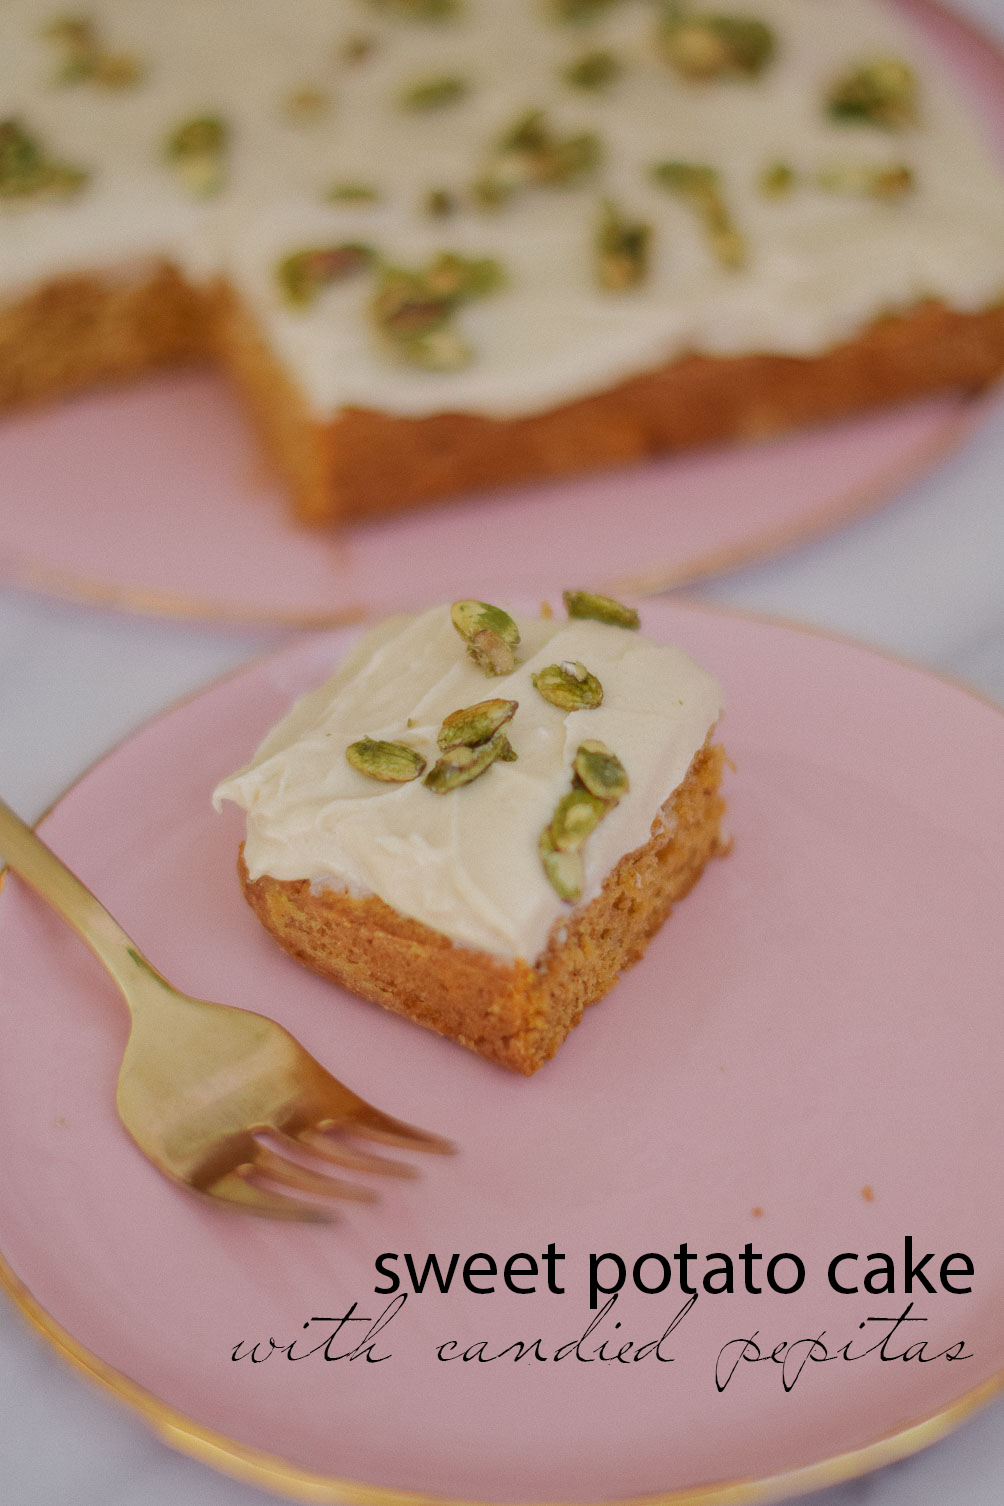 sweet-potato-cake-22-text